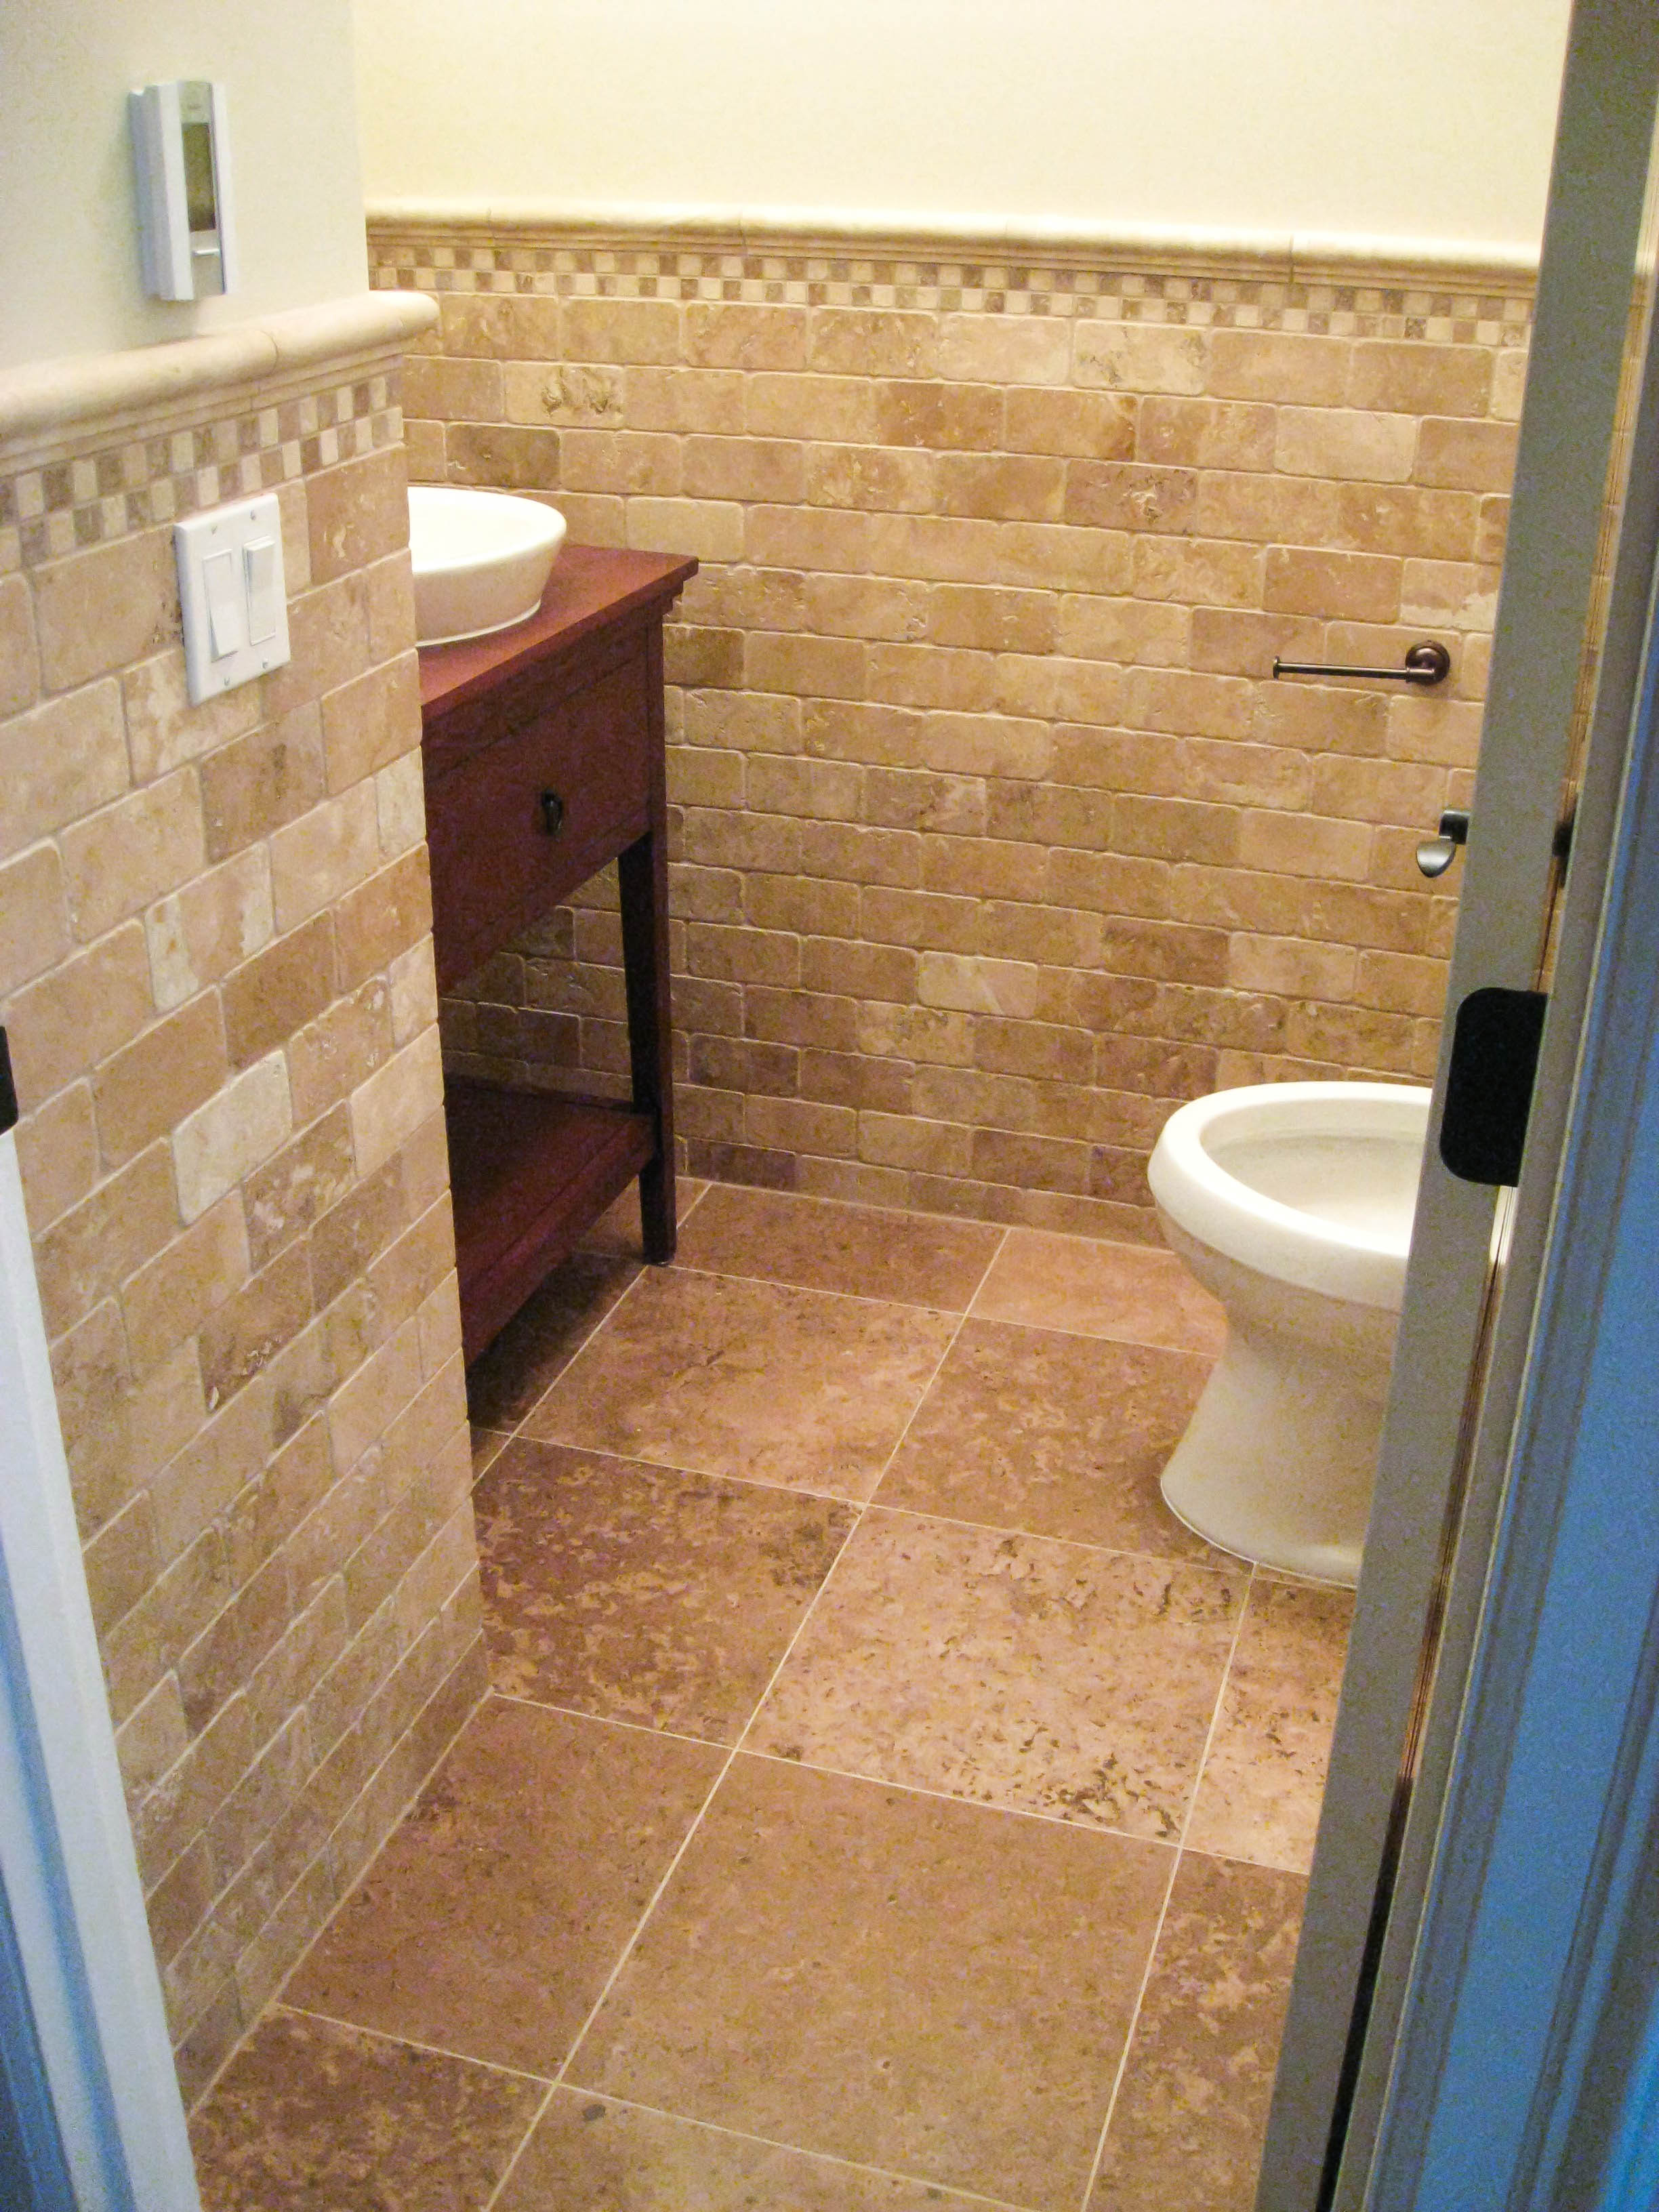 Bathroom wainscoting gallery tile contractor irc tiles services bathroom waincoting 1a dailygadgetfo Gallery